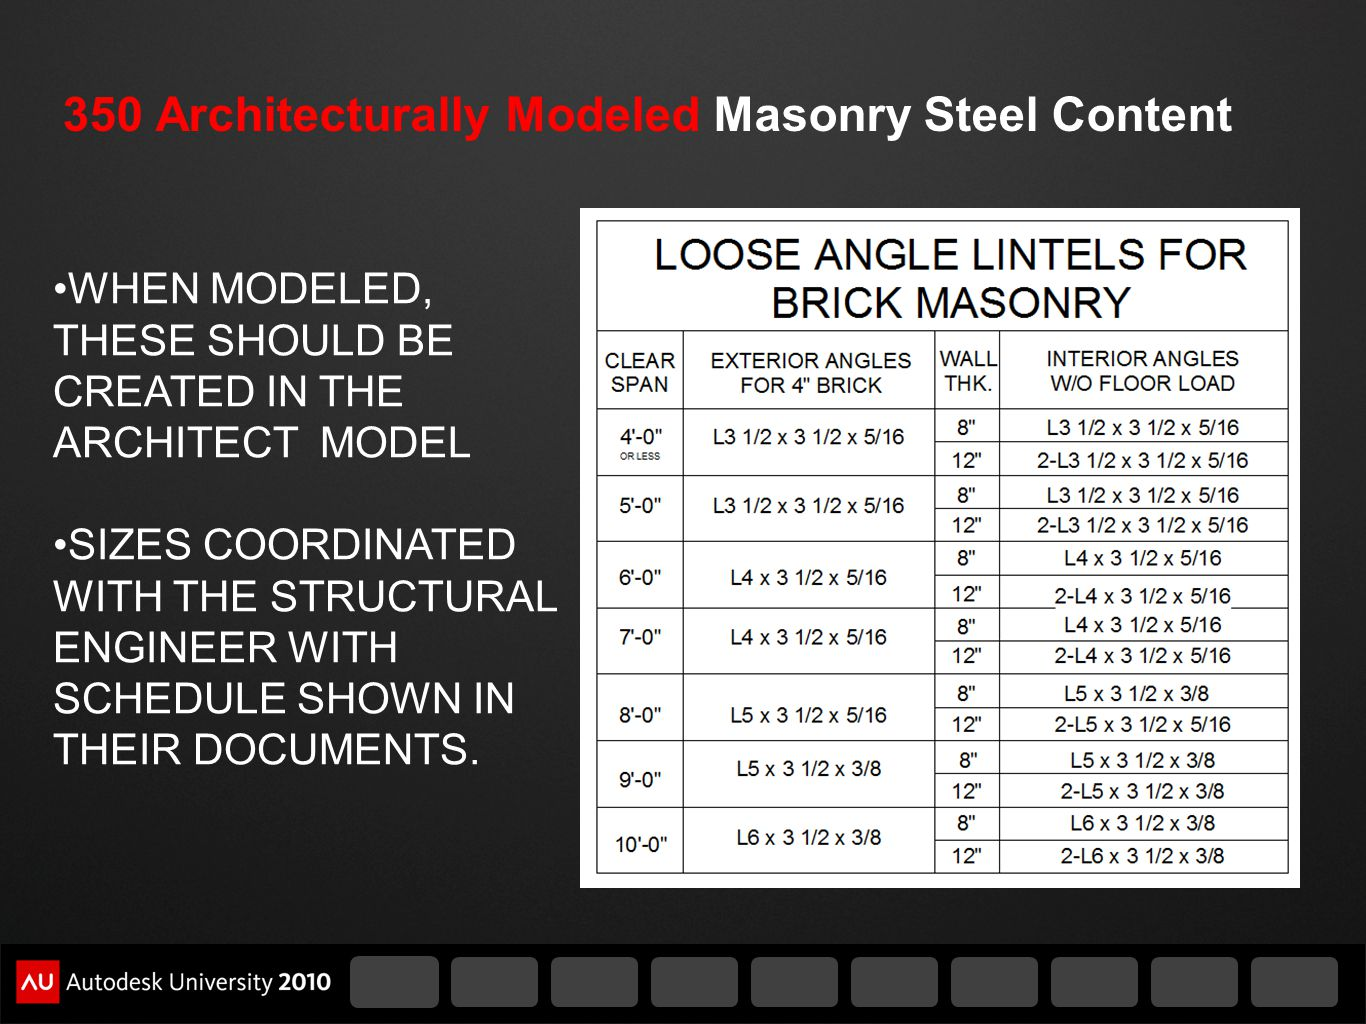 350 Architecturally Modeled Masonry Steel Content